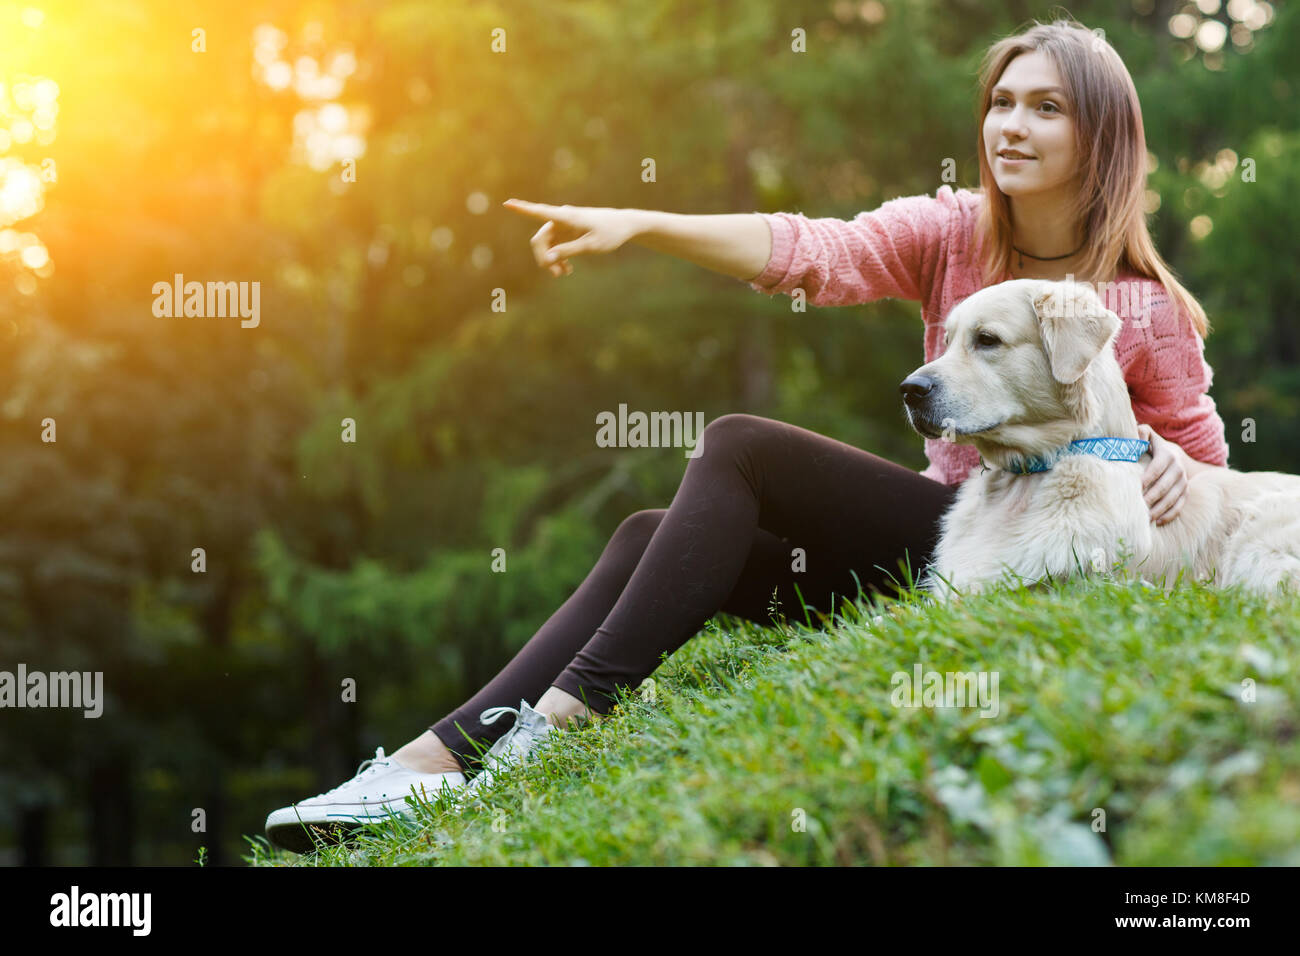 Photo of girl pointing forward next to dog on green lawn - Stock Image